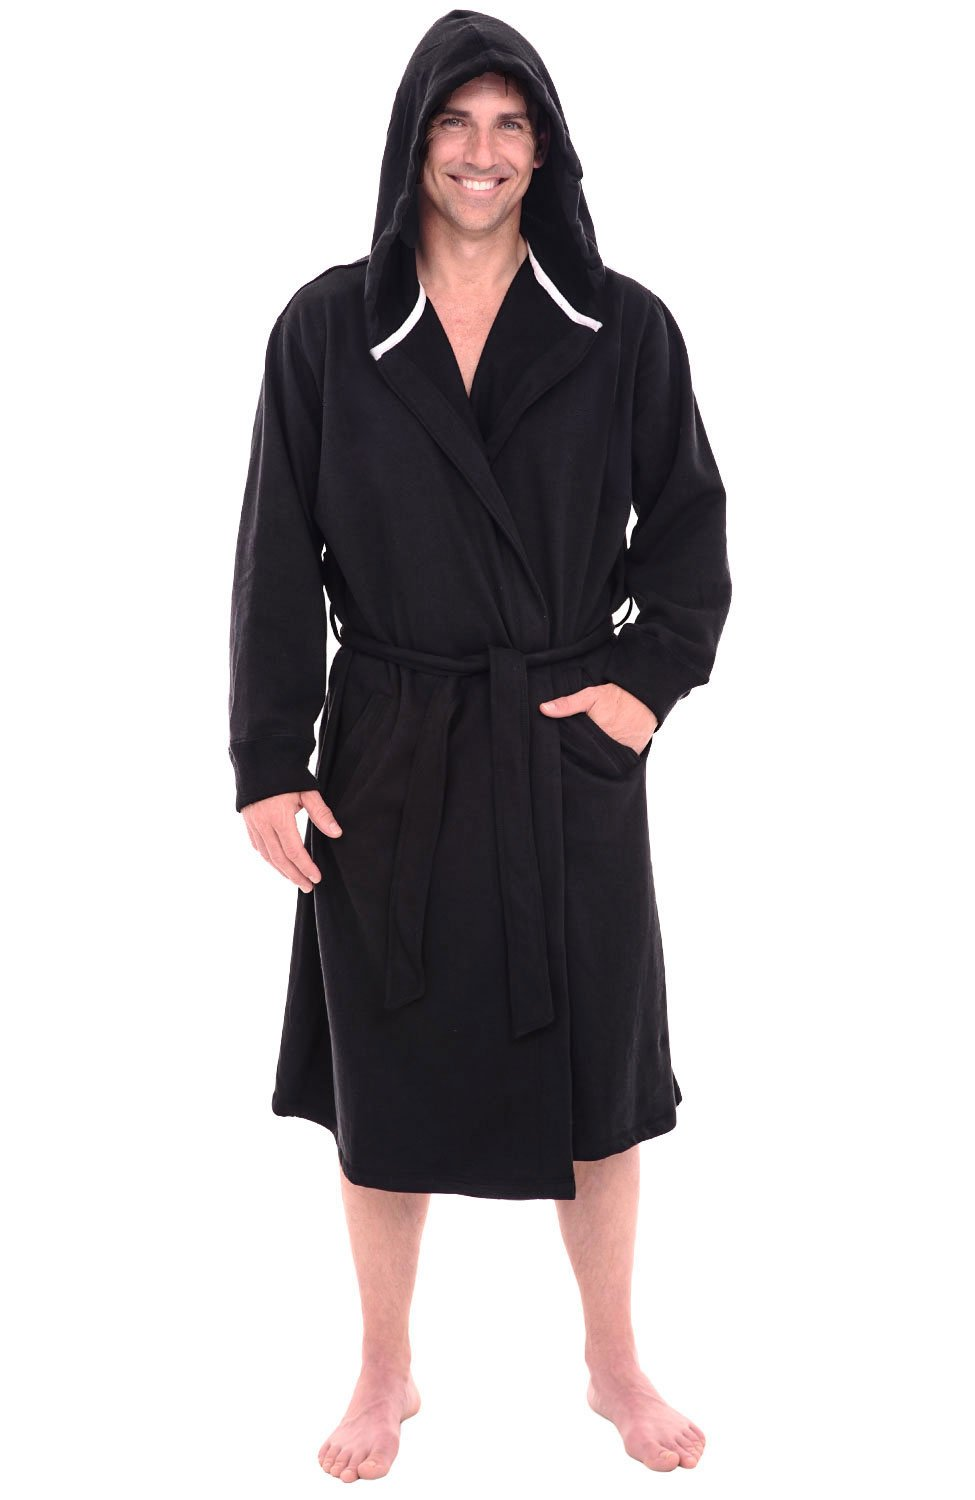 Del Rossa Mens Cotton Robe, Sweatshirt Style Hooded Bathrobe A0311